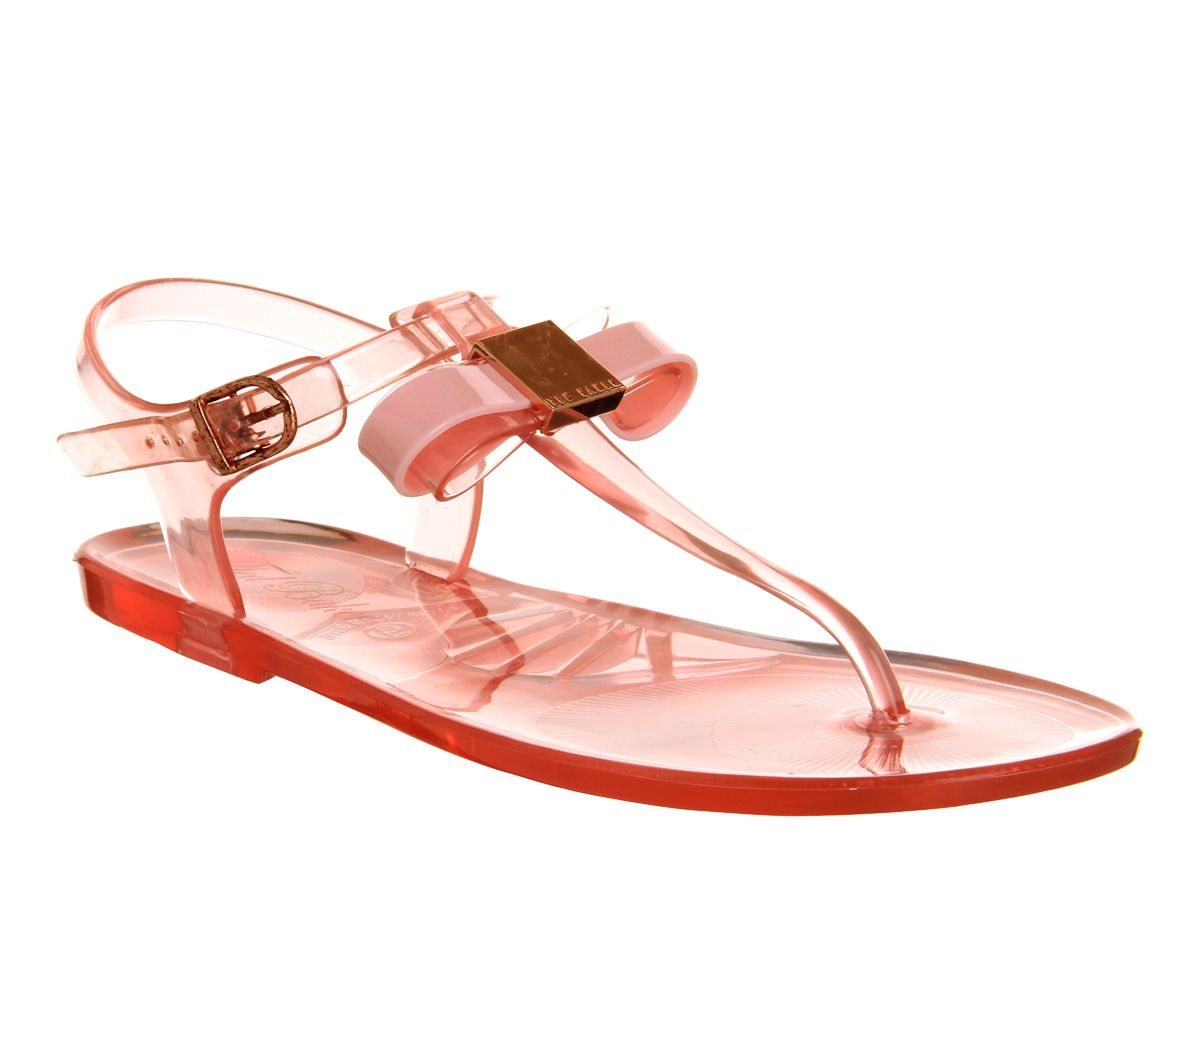 caac463cfd872 Ted Baker Deynaa Sling Back Jelly Light Pink - Sandals